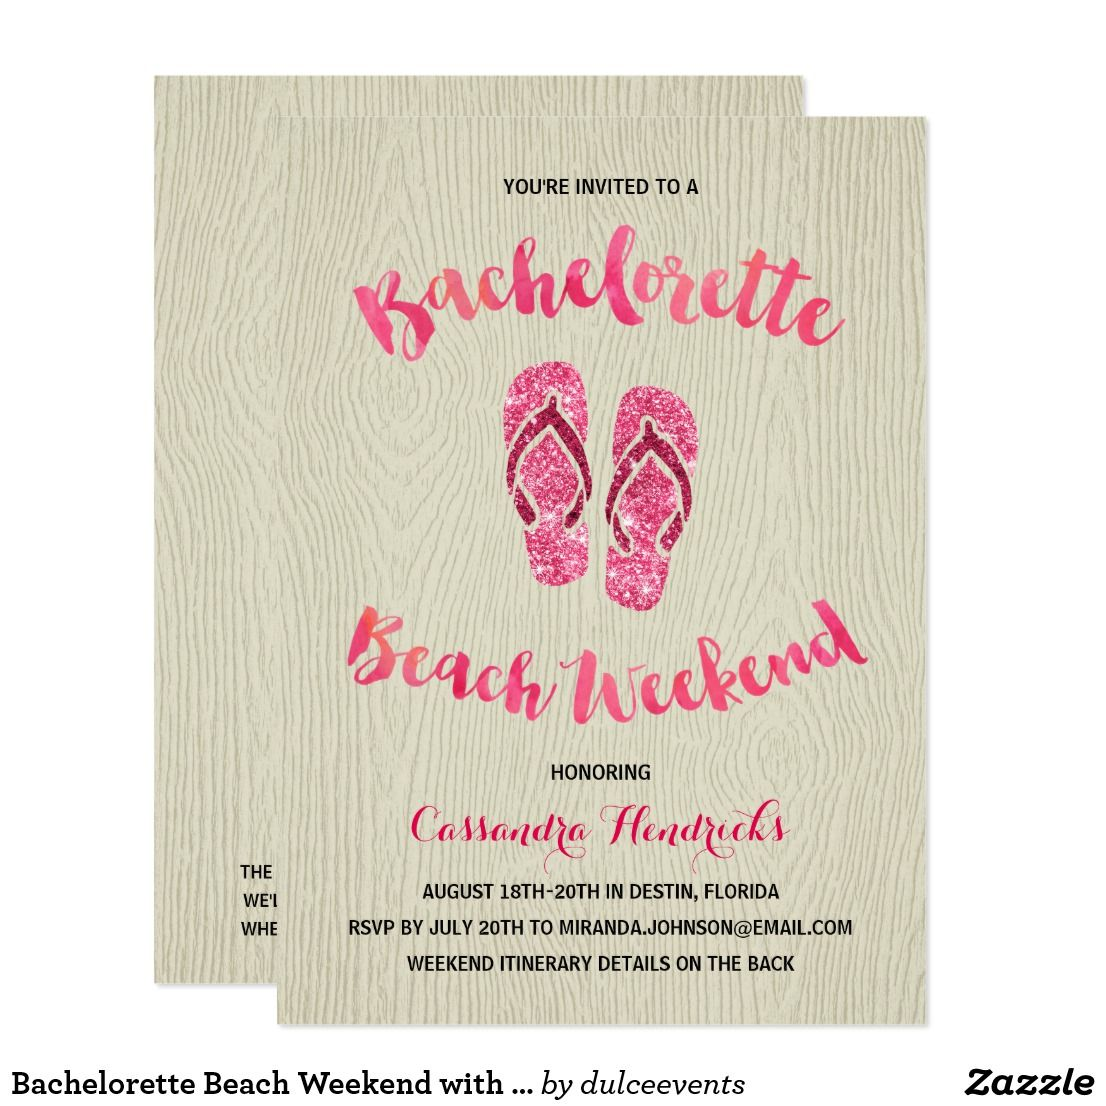 Bachelorette Beach Weekend. Bachelorette Party Invite- Stagette ...